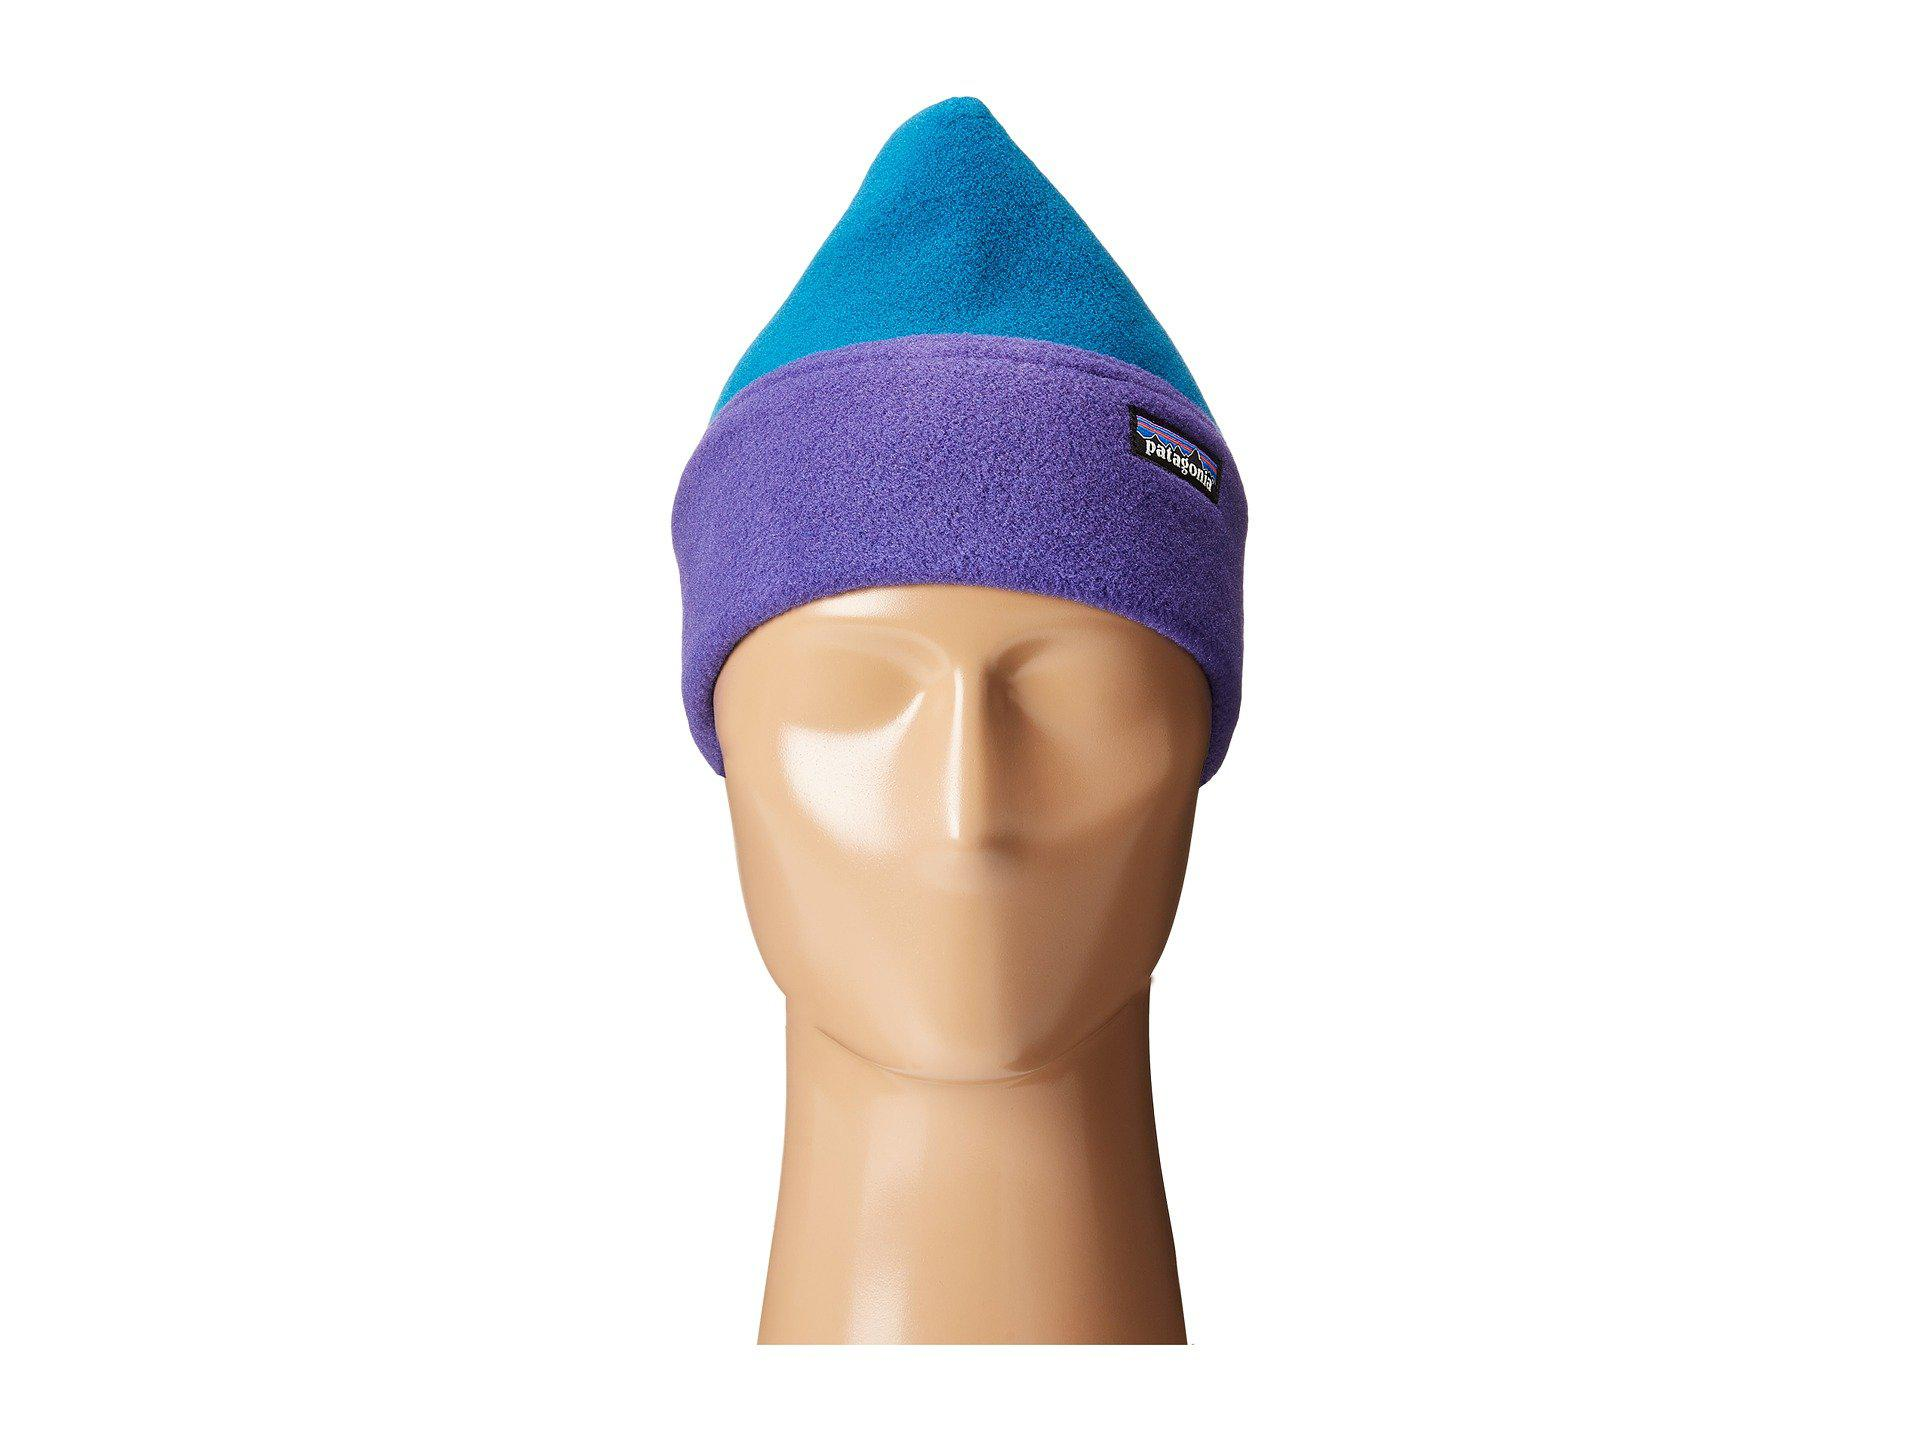 Lyst - Patagonia Synch Alpine Hat in Blue for Men 7db8d526ac1